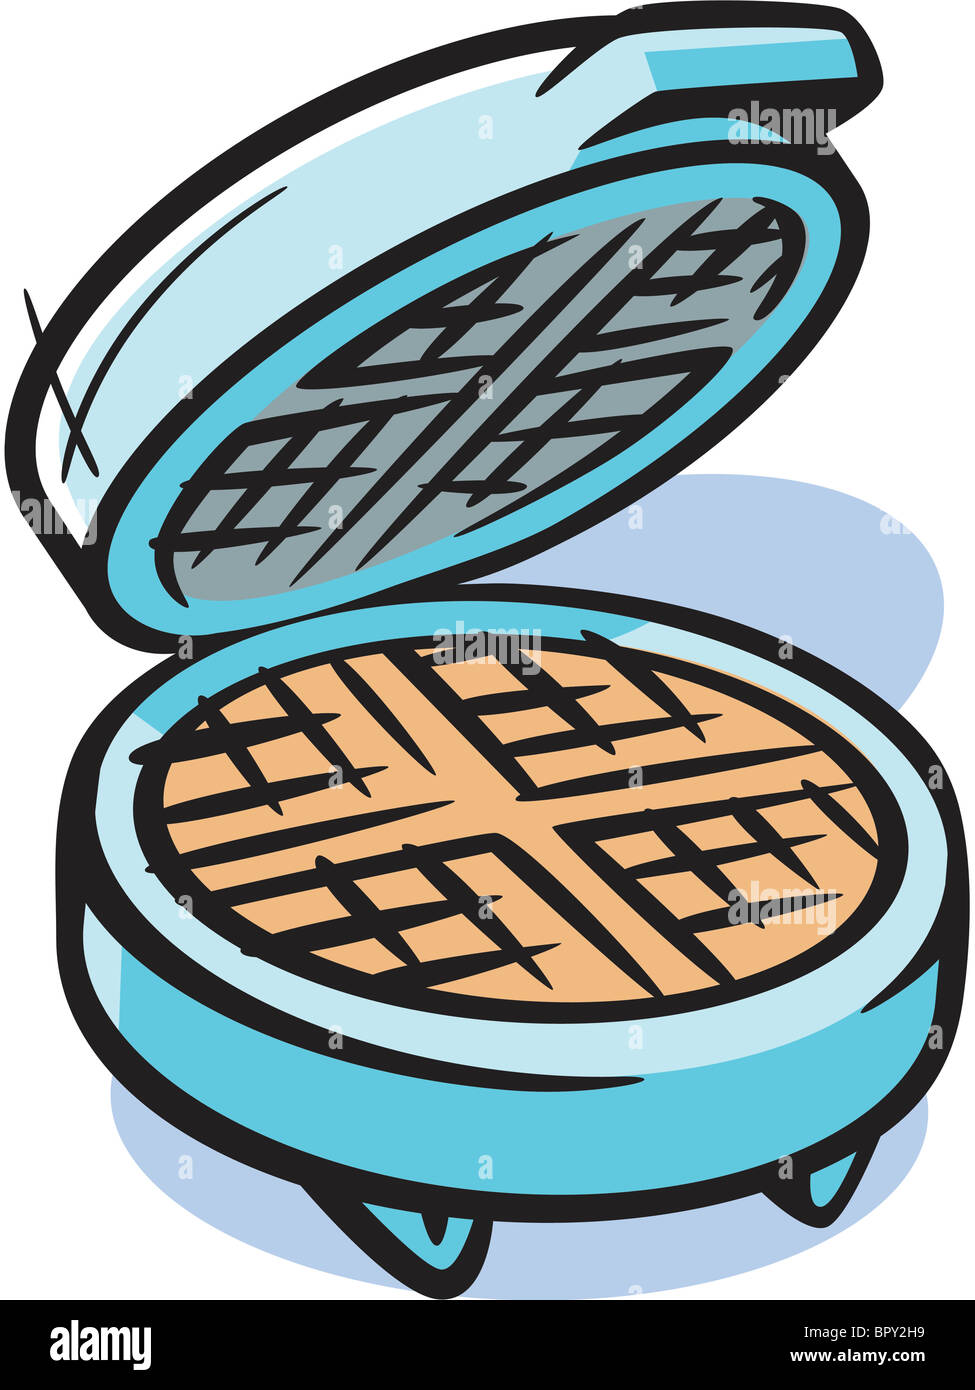 Drawing of a waffle maker Stock Photo: 31327557 - Alamy